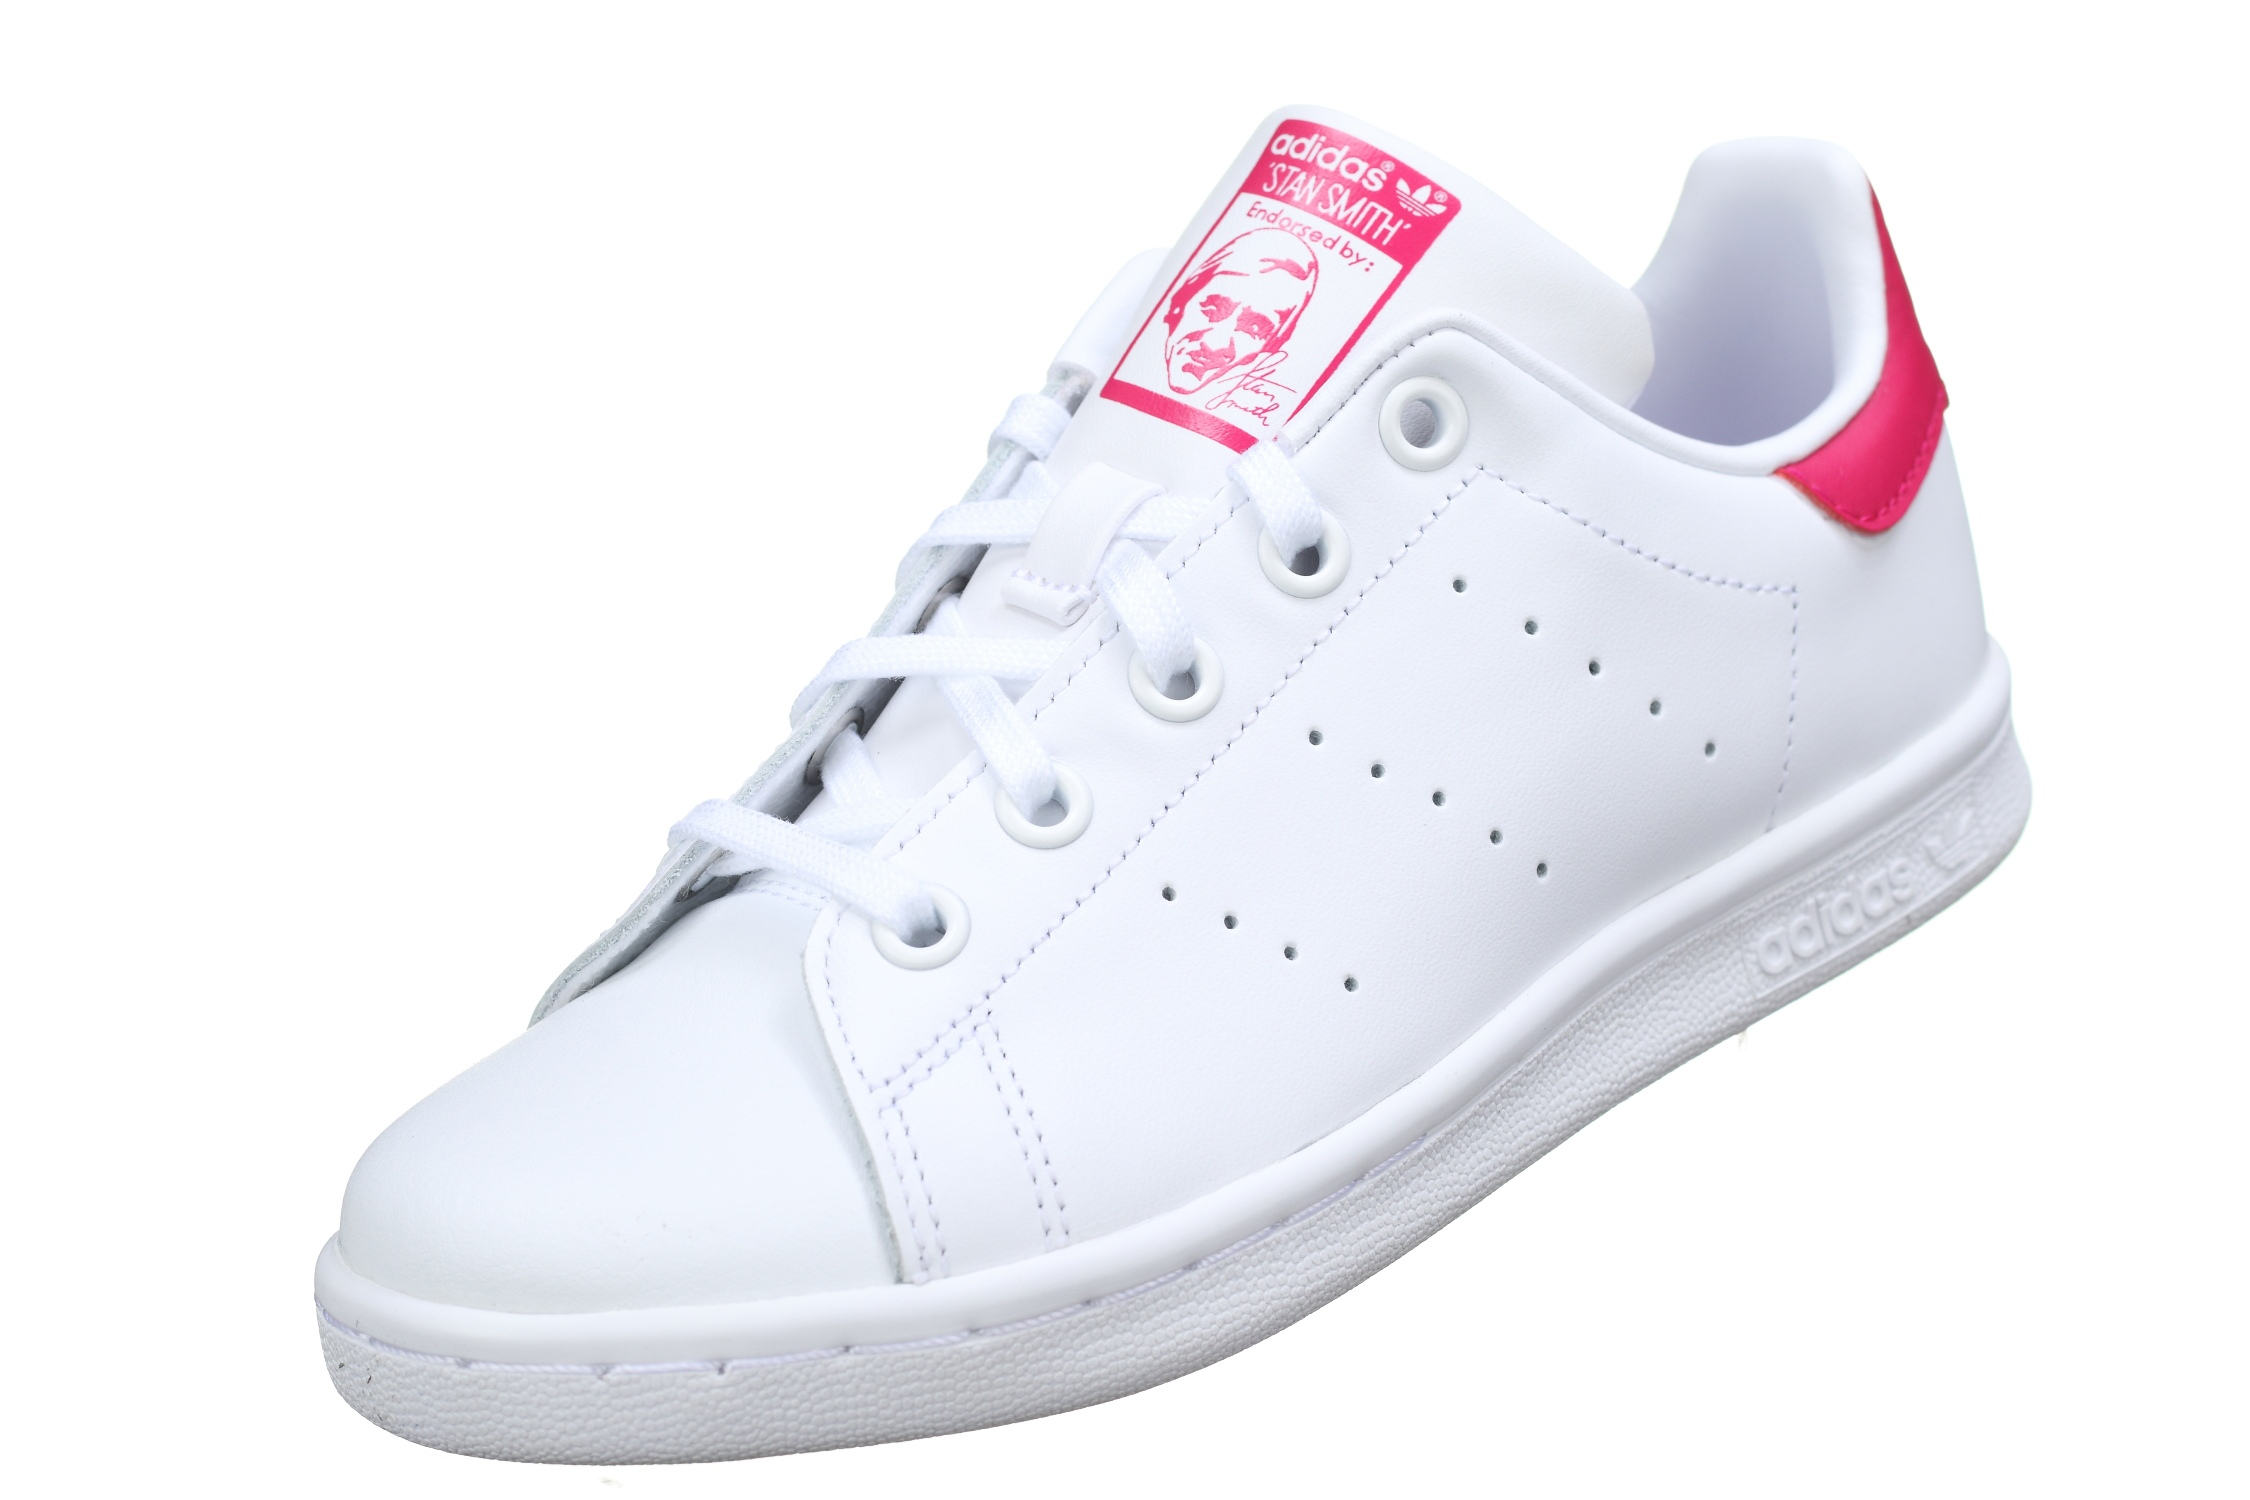 b21b8354382d5 Basket garçon Adidas Stan Smith C Ba8377 Blanc Rose - Leader Mode -